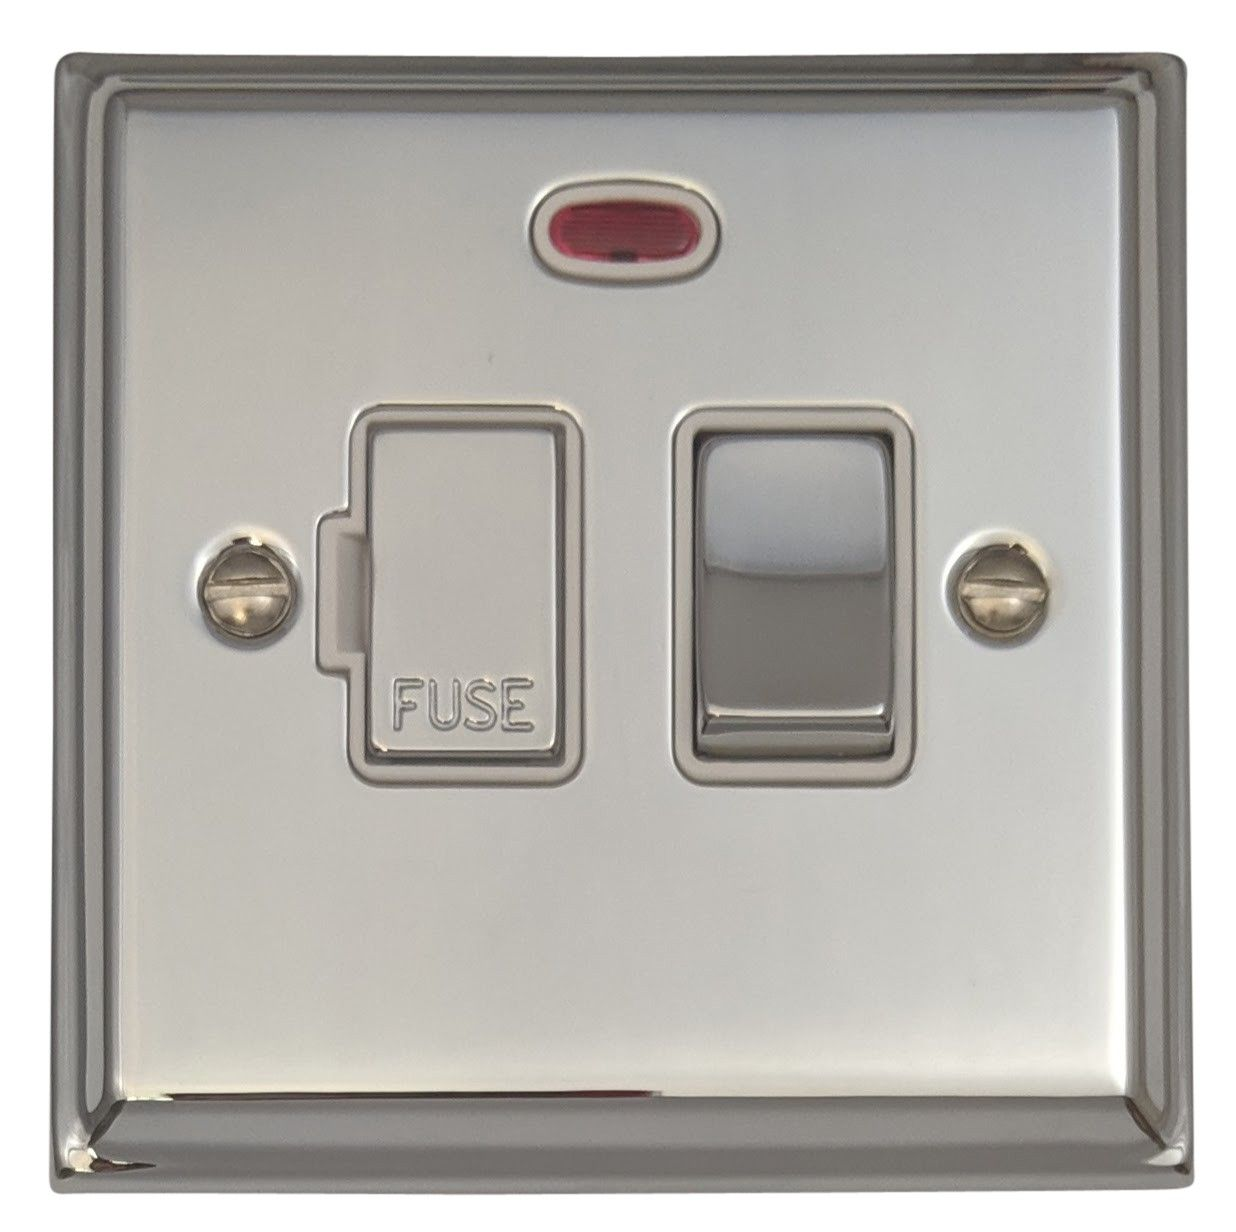 G&H DC227 Deco Plate Polished Chrome 1 Gang Fused Spur 13A Switched & Neon